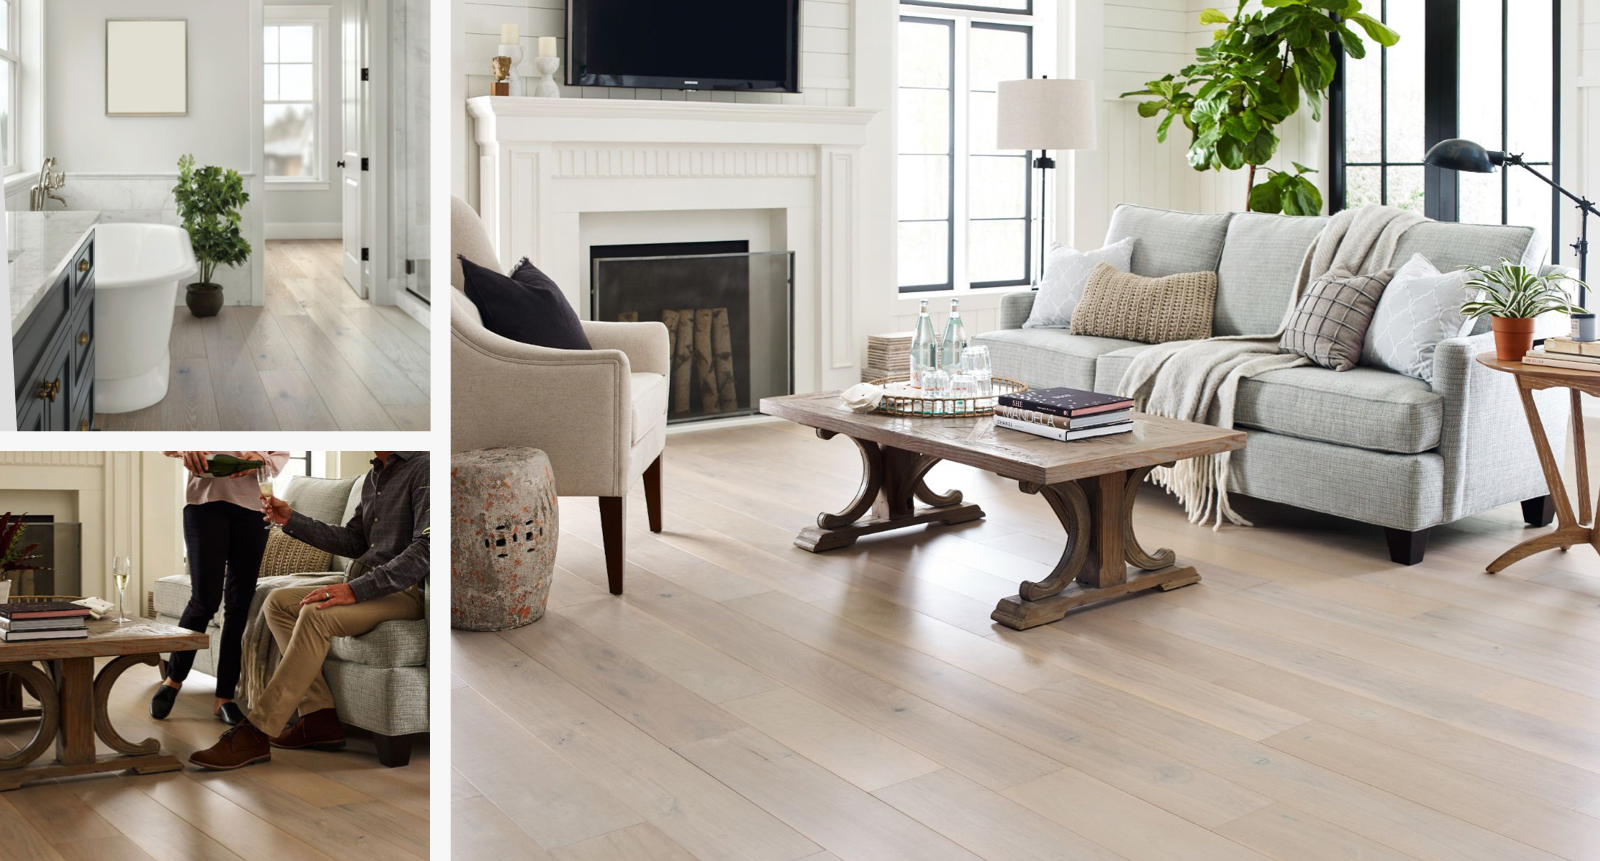 Floorte waterproof hardwood flooring for your home | Budget Flooring, Inc.